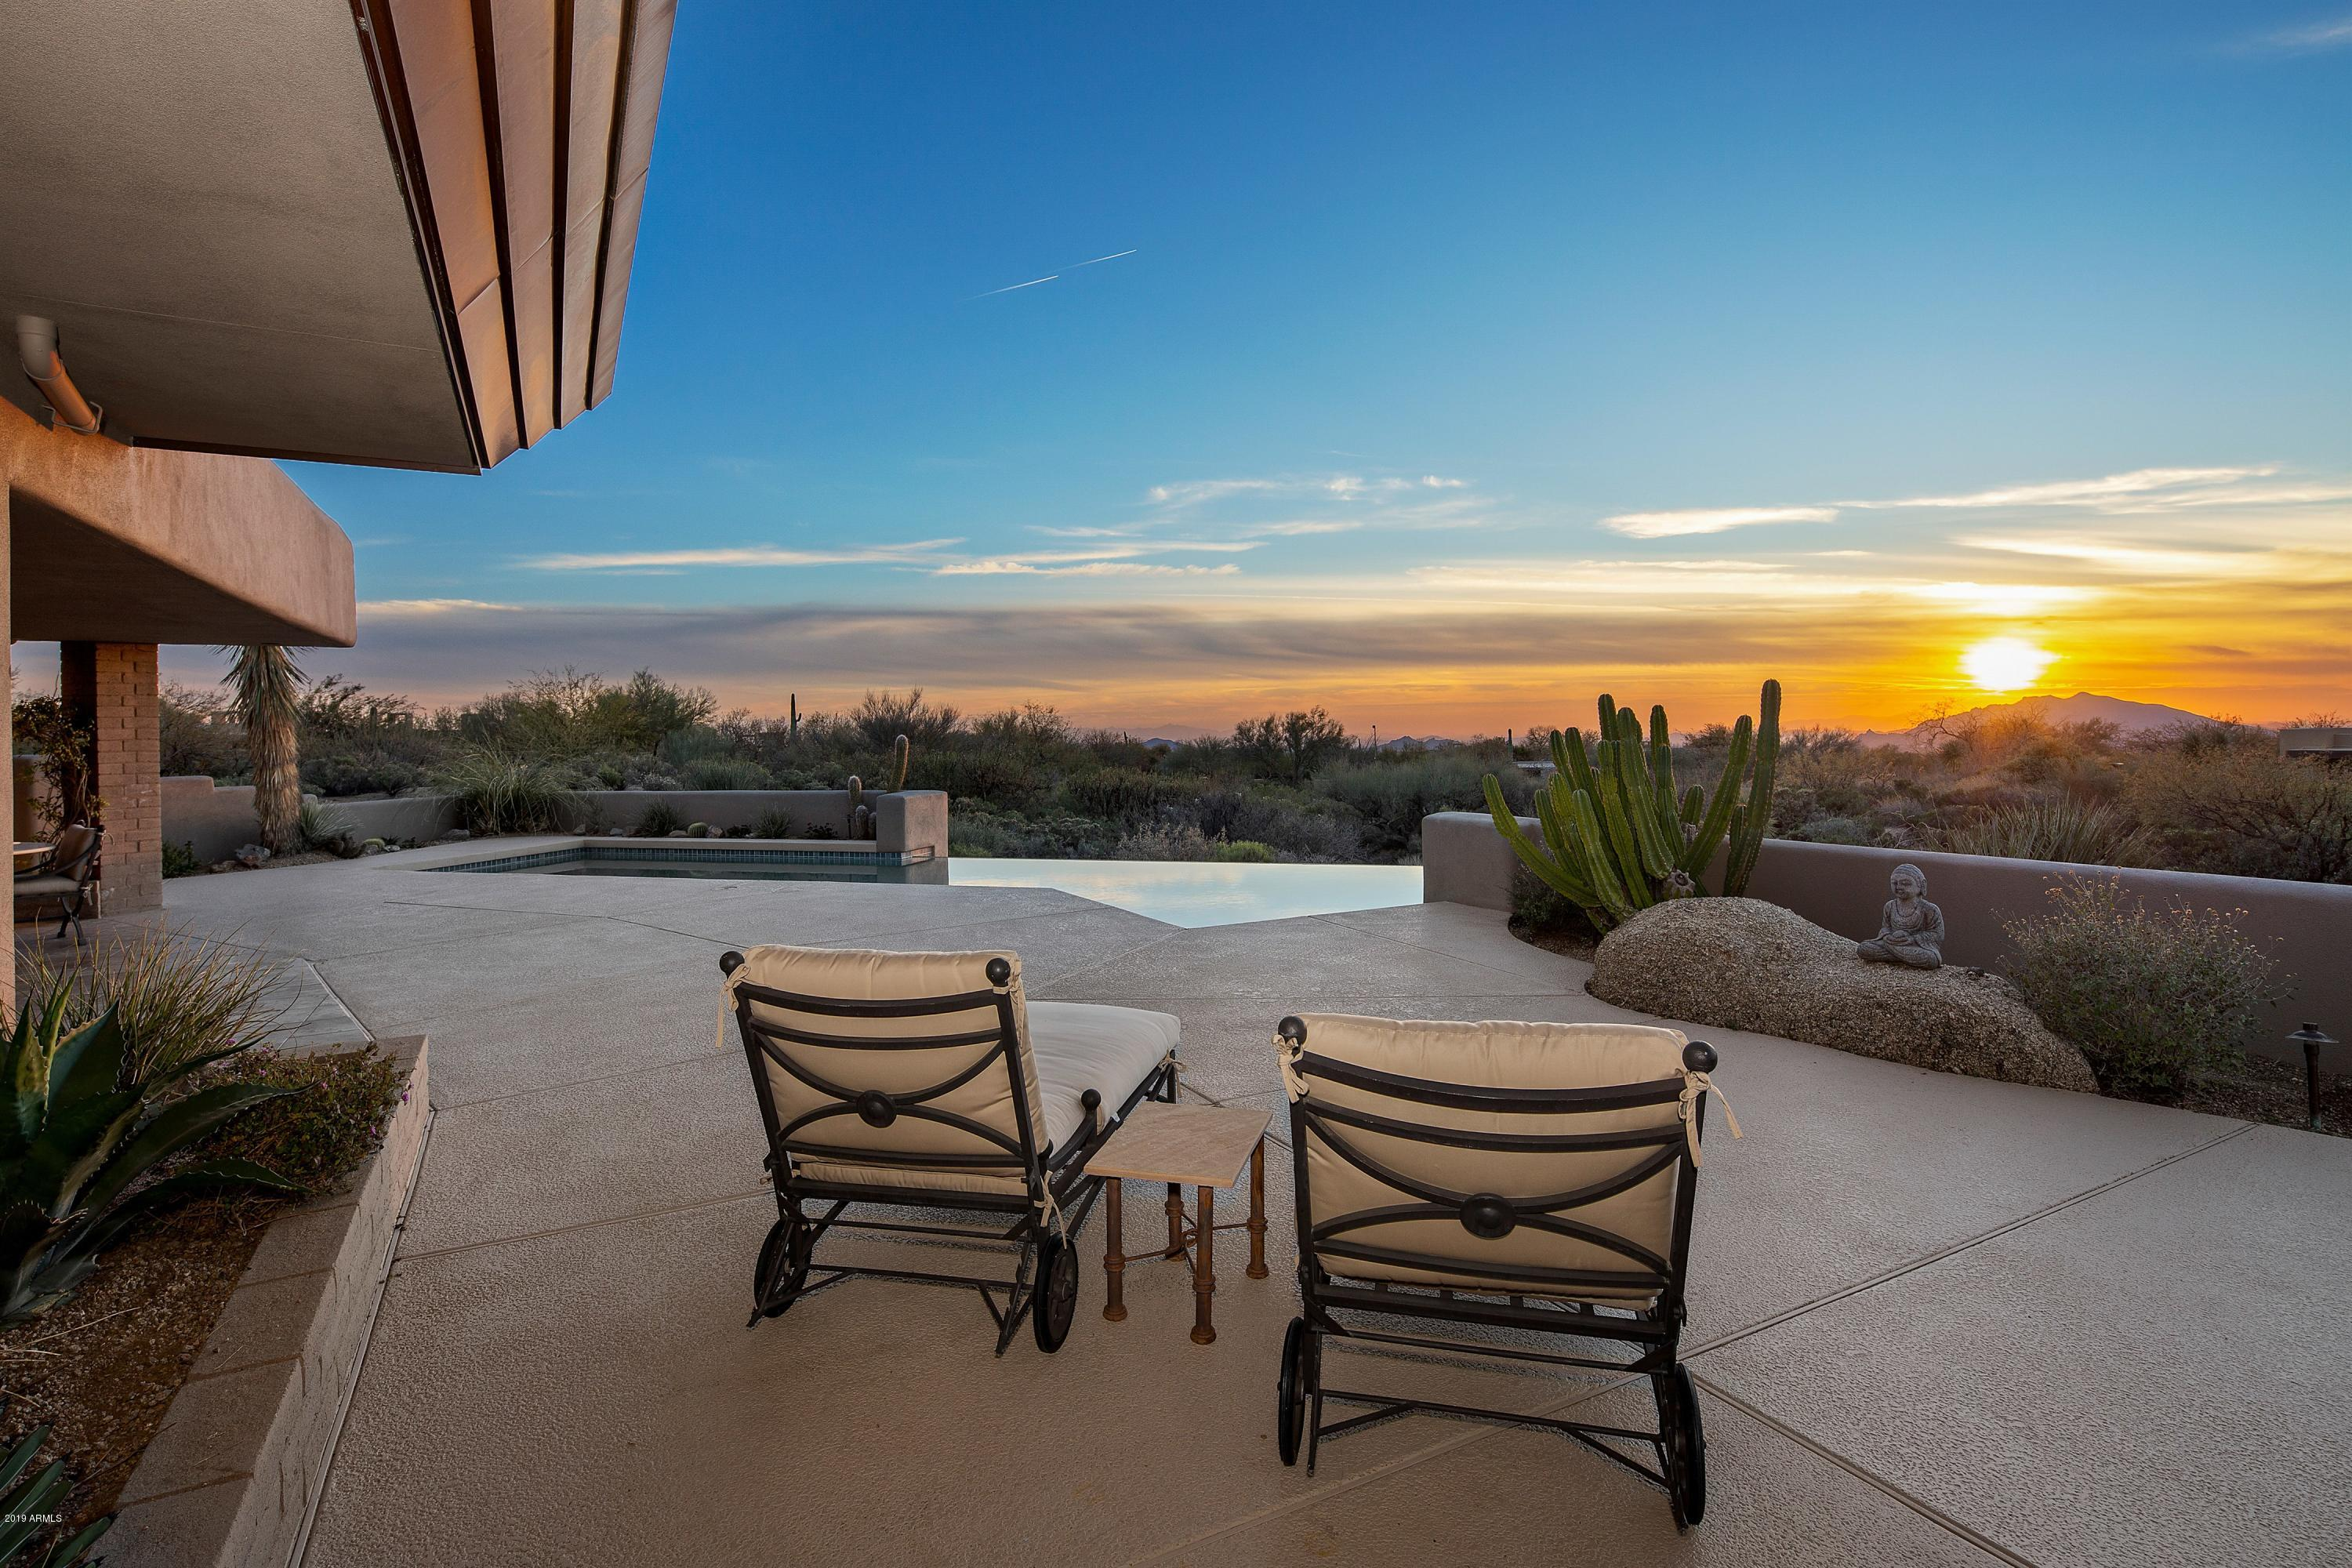 6 Benefits to Having a Winter Home In Scottsdale, AZ